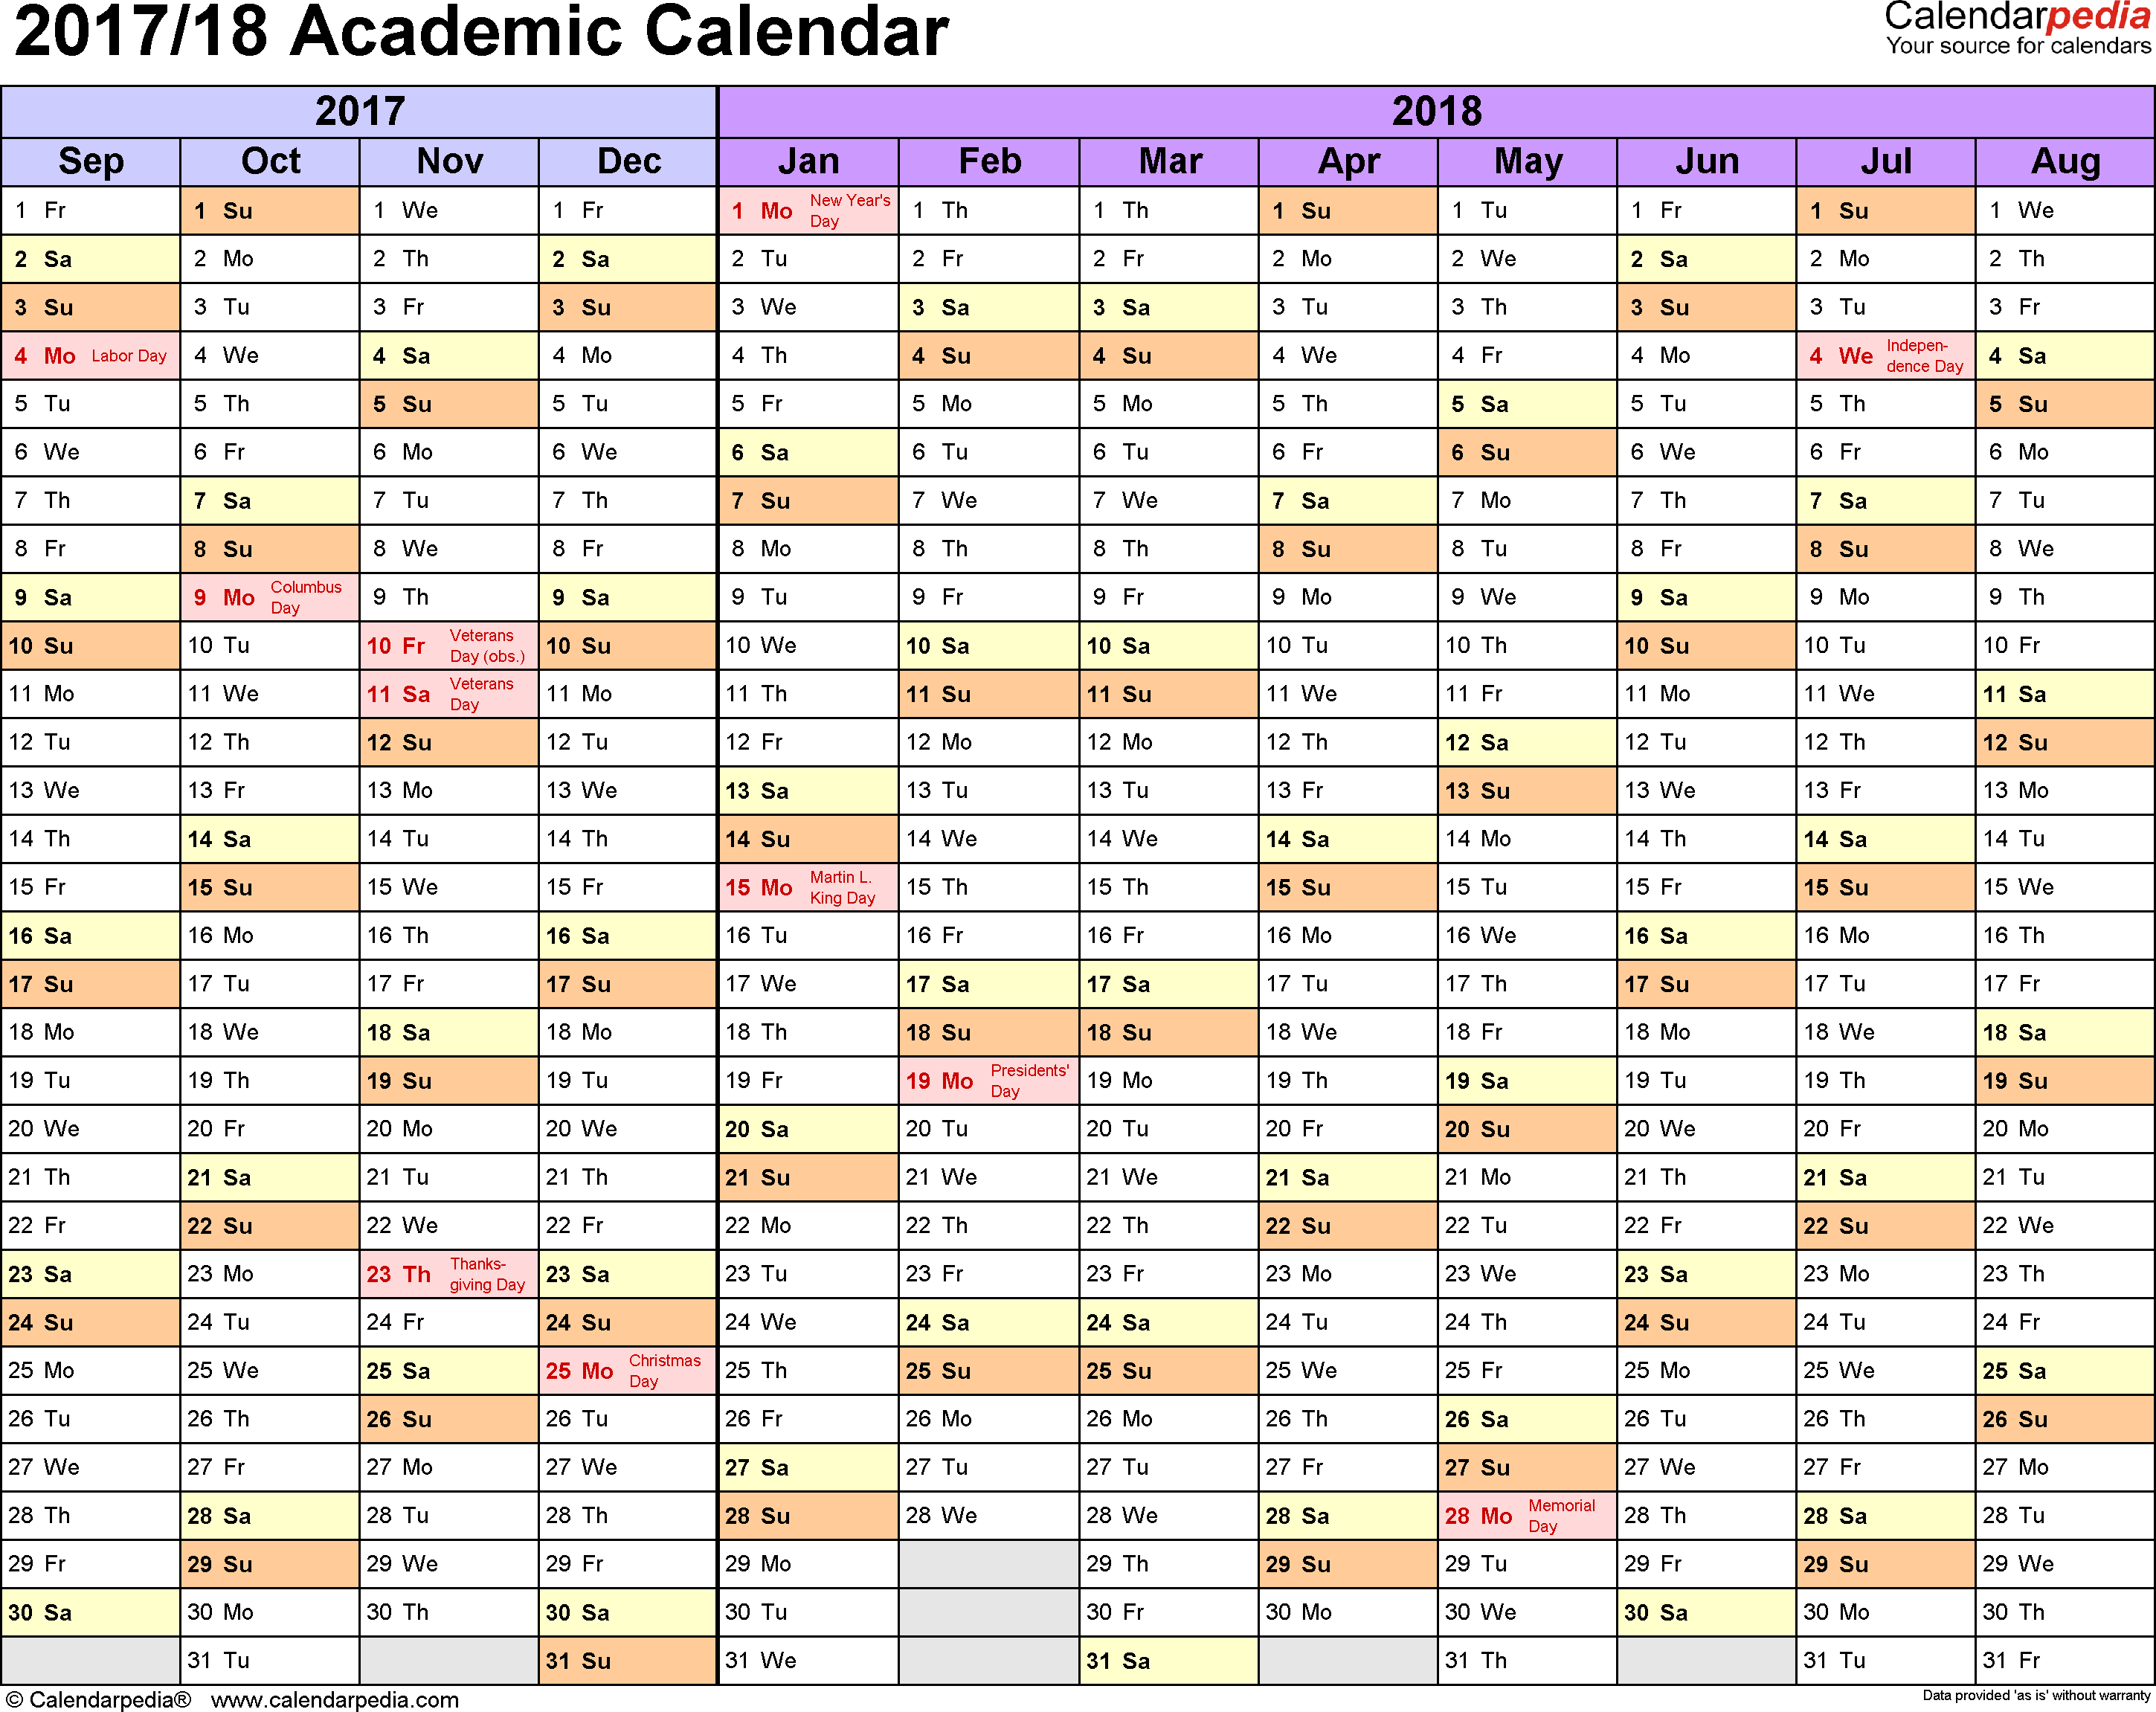 template 1 academic calendar 201718 for excel landscape orientation months horizontally